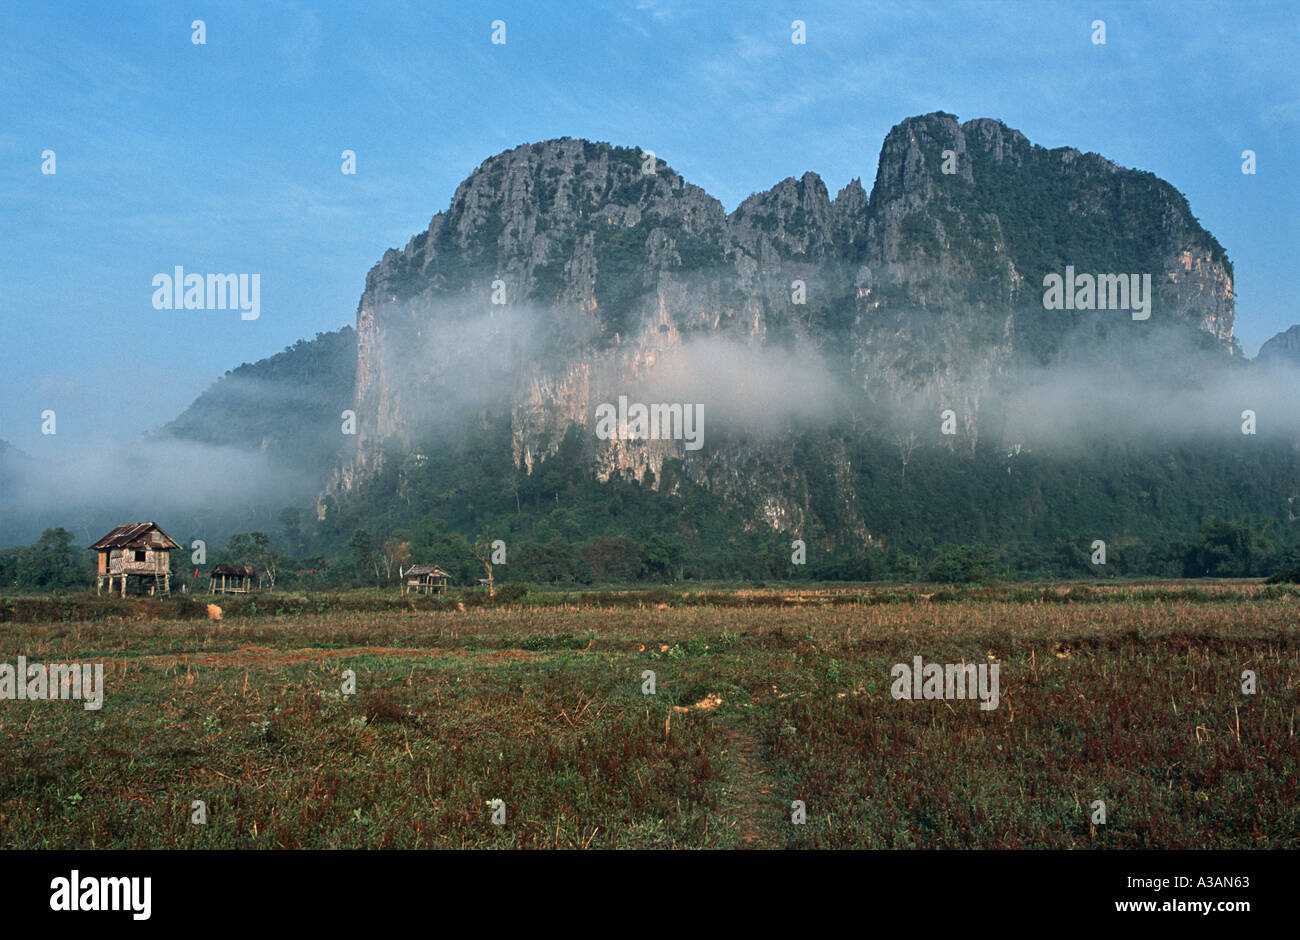 Mist shrouded limestone outcrops amidst rural fields Vang Vieng Laos - Stock Image